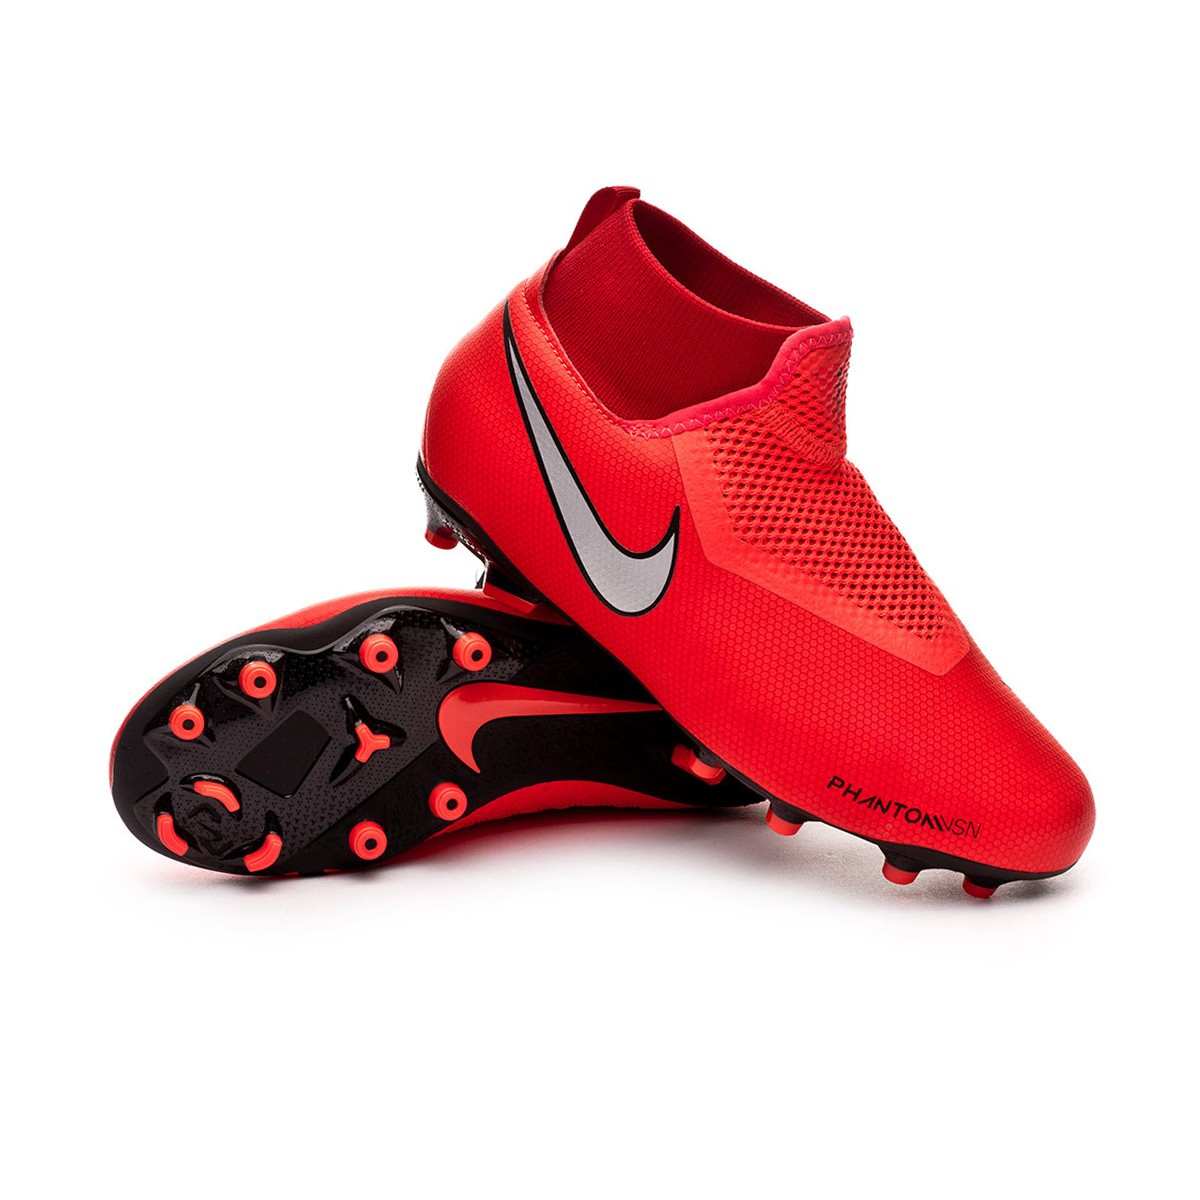 784eaa6b8 Football Boots Nike Phantom Vision Academy DF FG MG Niño Bright ...